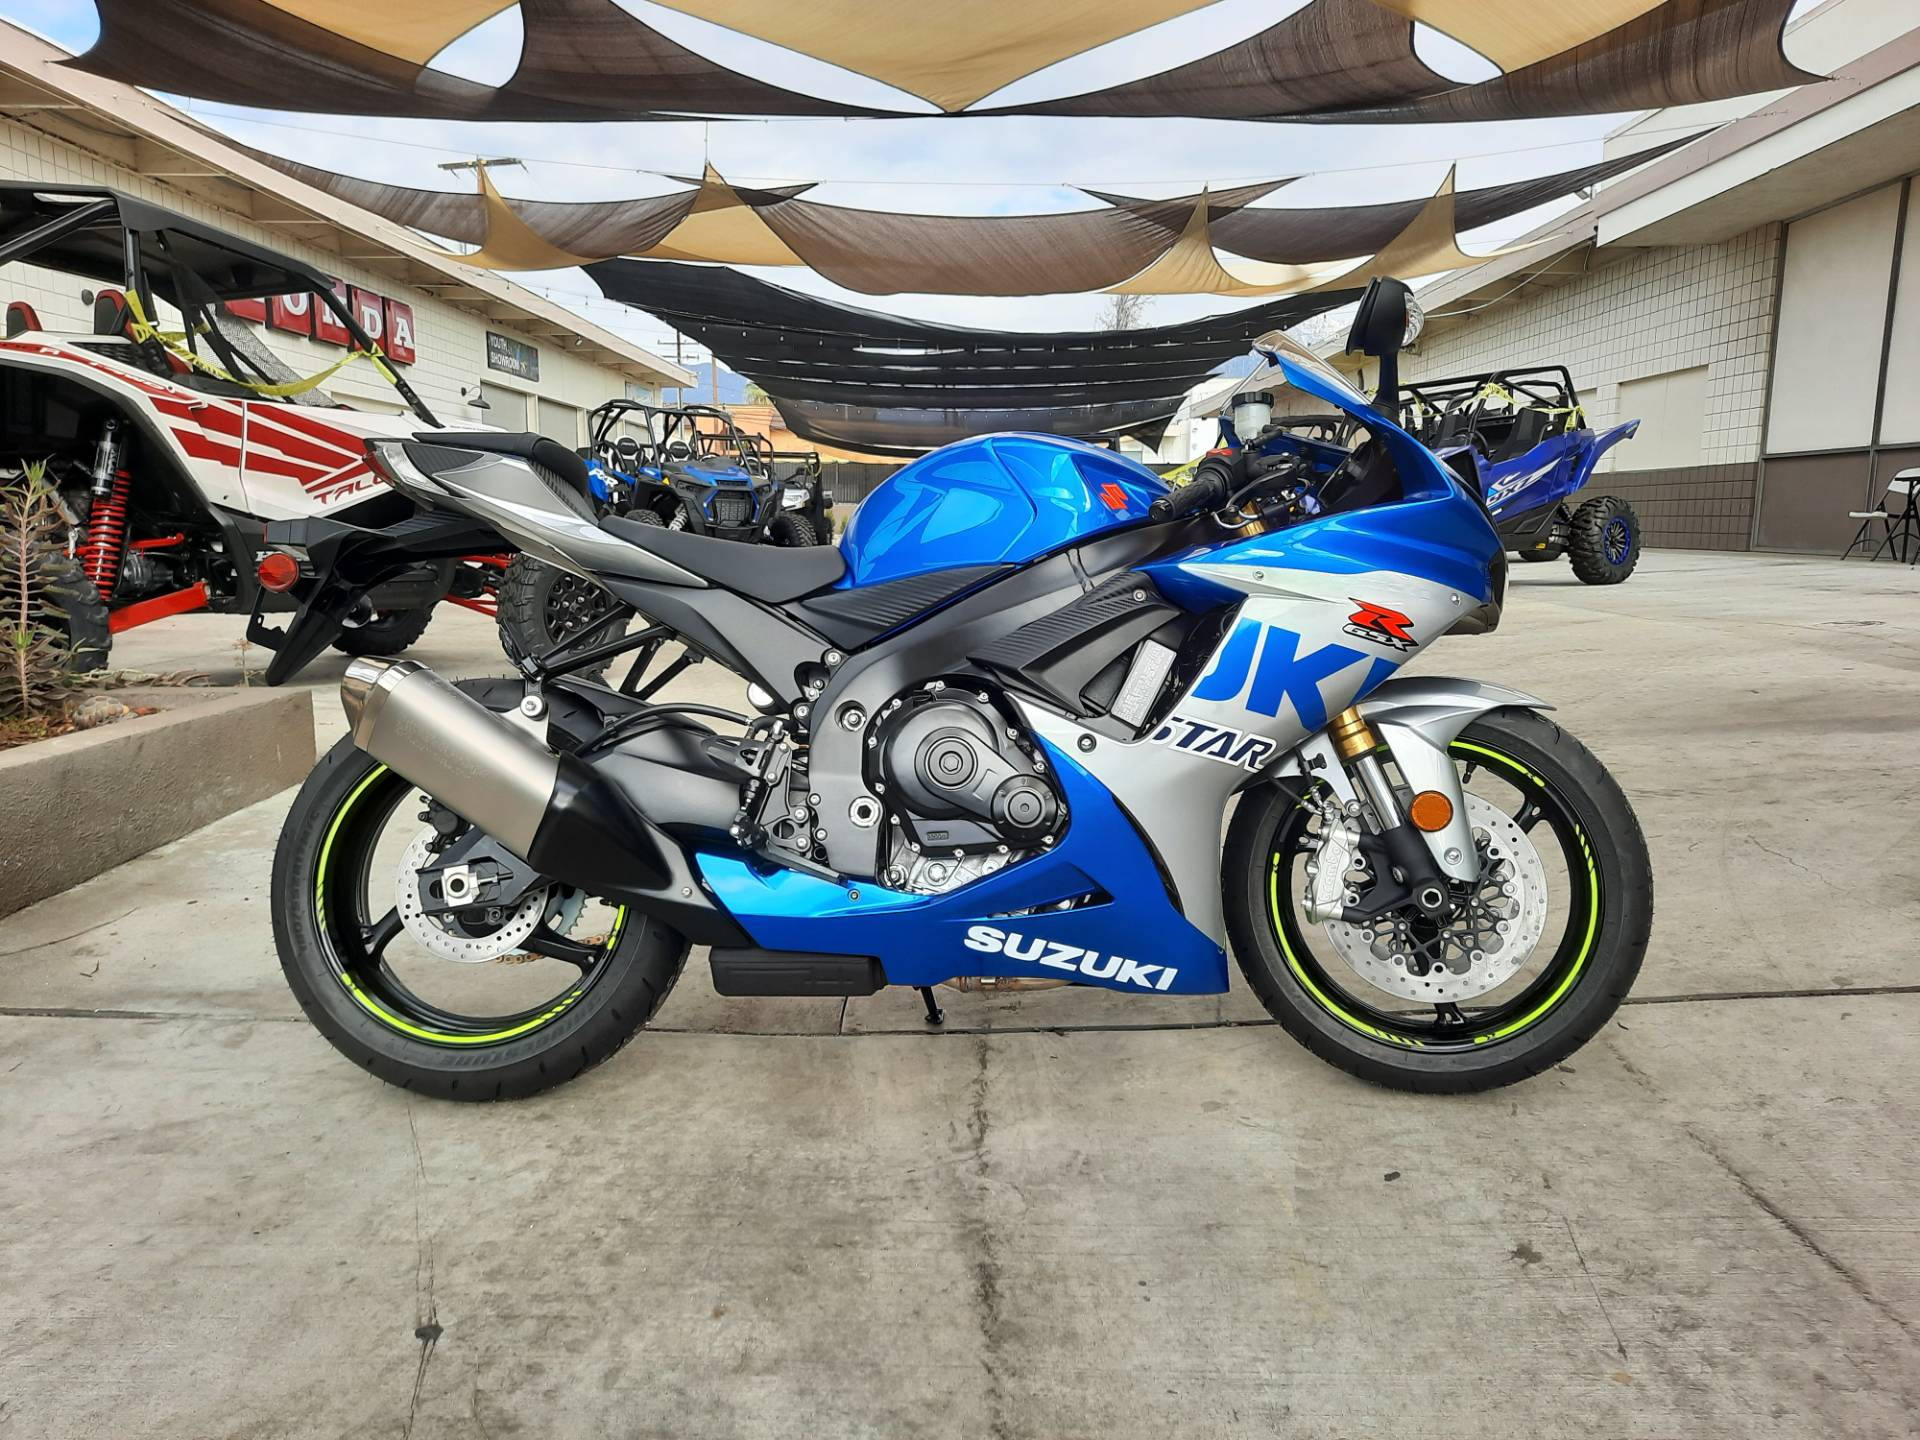 2021 Suzuki GSX-R750 100th Anniversary Edition in Ontario, California - Photo 5